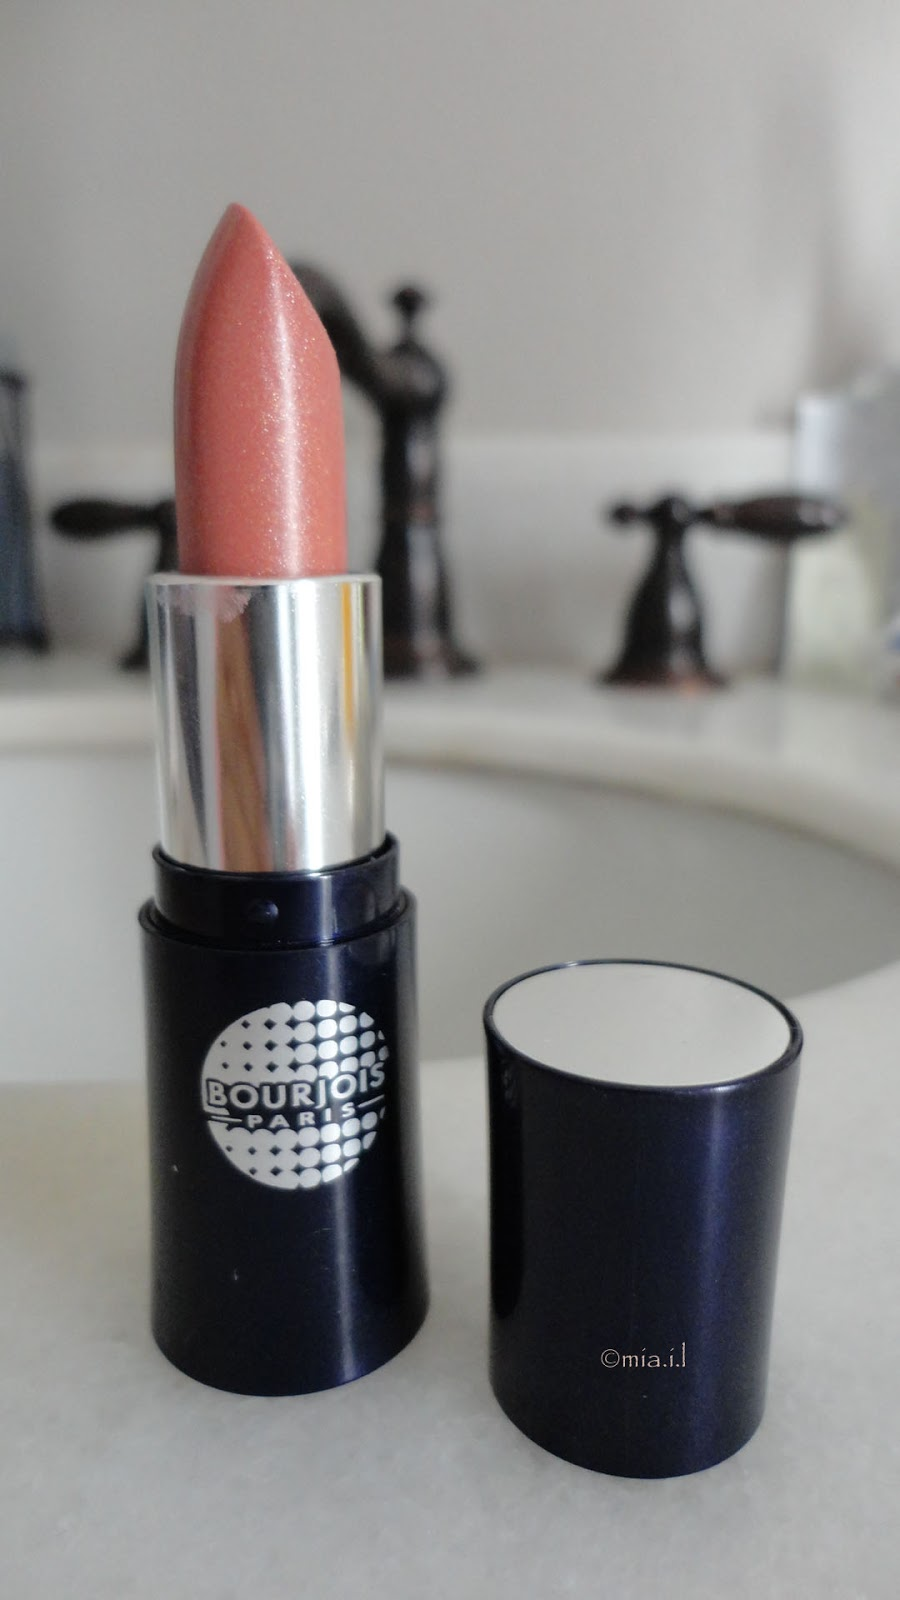 bourjois rouge a levres lipstick rouge clubbing 61 pretty nude. Black Bedroom Furniture Sets. Home Design Ideas